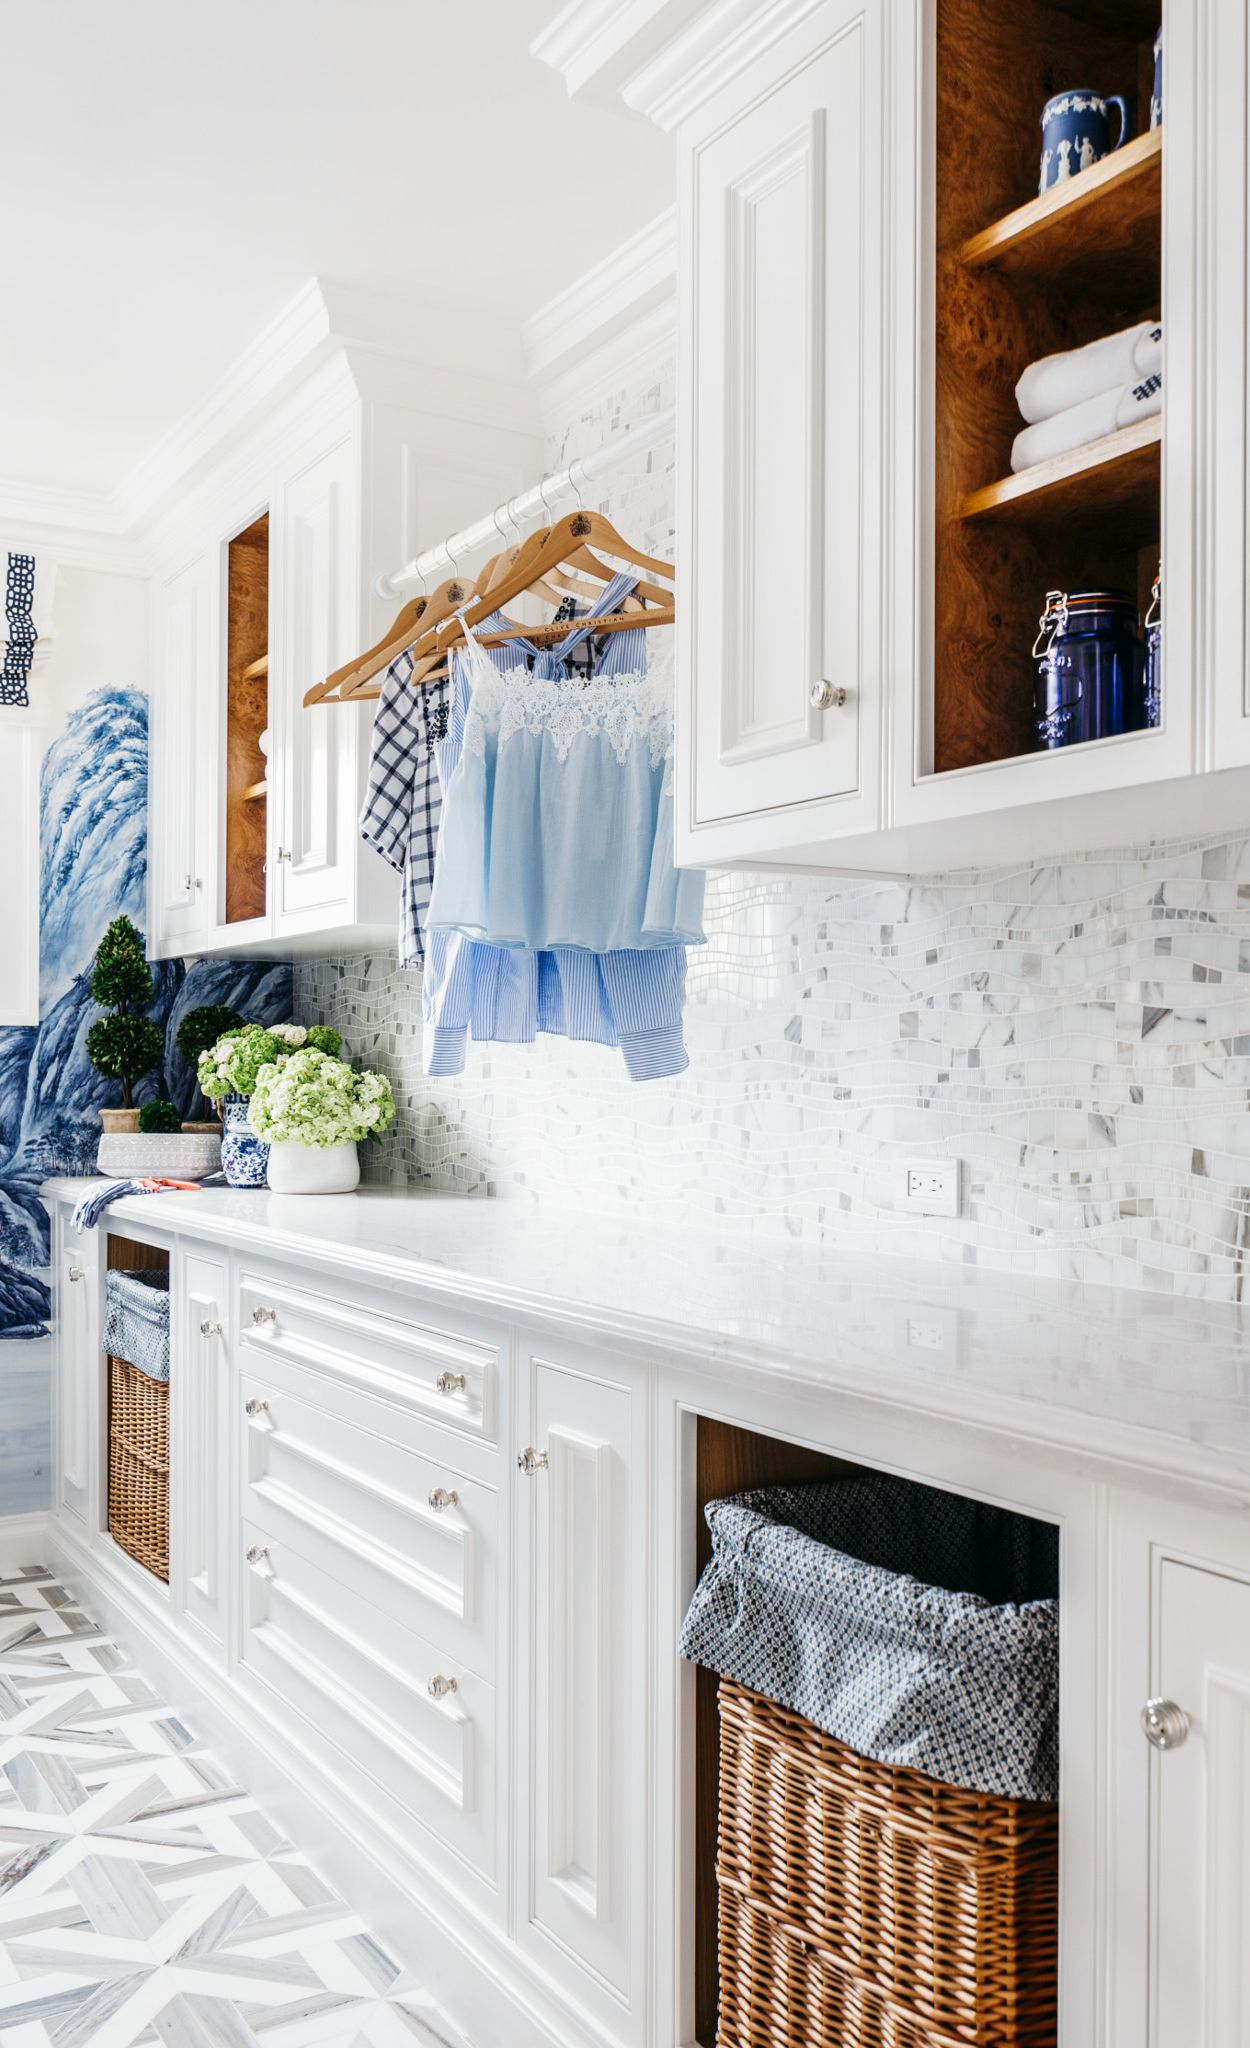 Cambria Ella countertops paired with white cabinets in a laundry room.